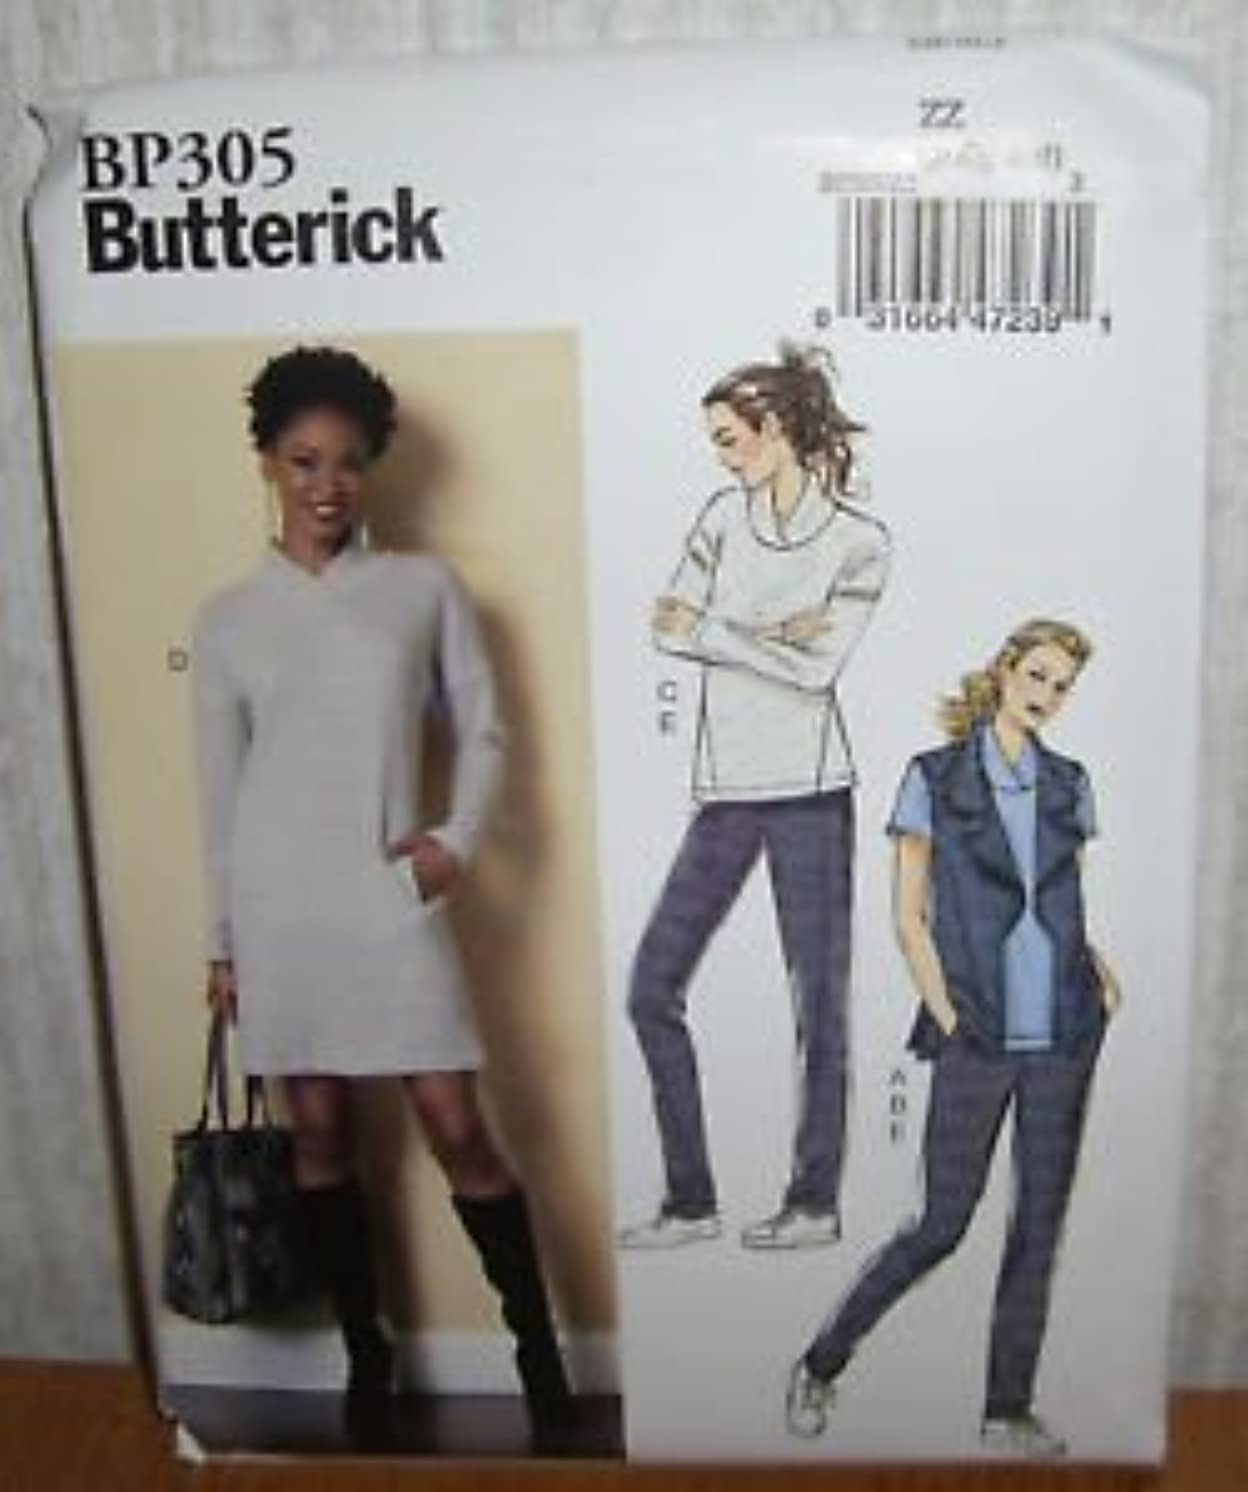 Butterick Pattern #BP305 Misses Vest Tops Dress and Pants Sizes Xsm-Med (Xsm-Med)